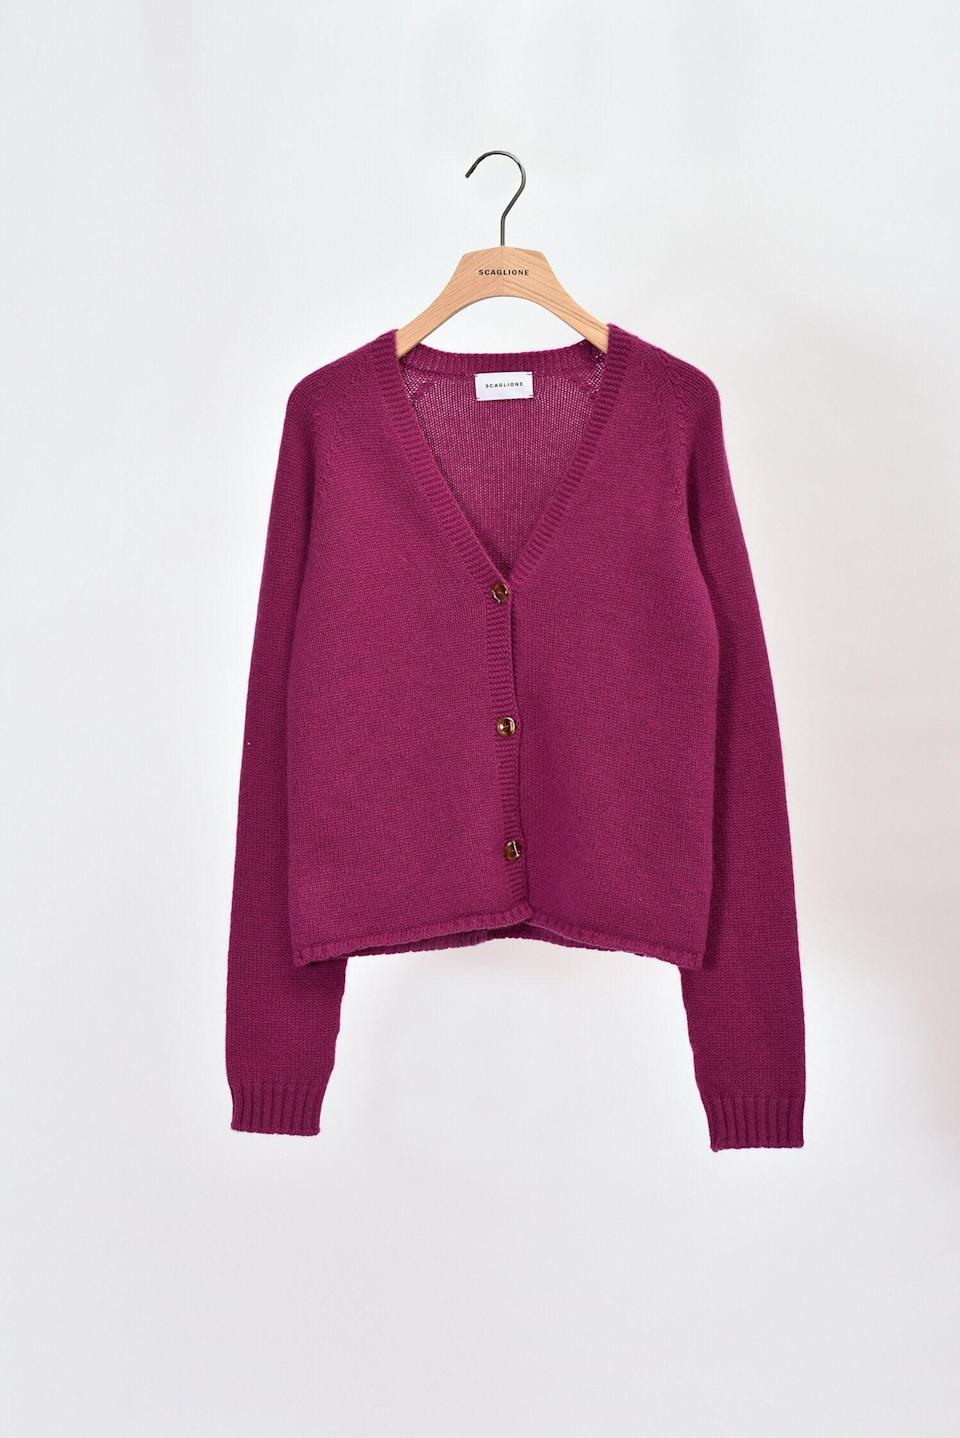 """<p>""""I toss this <span>seamless cardigan from Scaglione</span> ($285) over my looks because it's winter, and cashmere always feel like a big hug and a treat. I have a lot of cream, camel, and beige knits that are already my go-tos, but this rich jewel tone just cheers me up.""""</p>"""